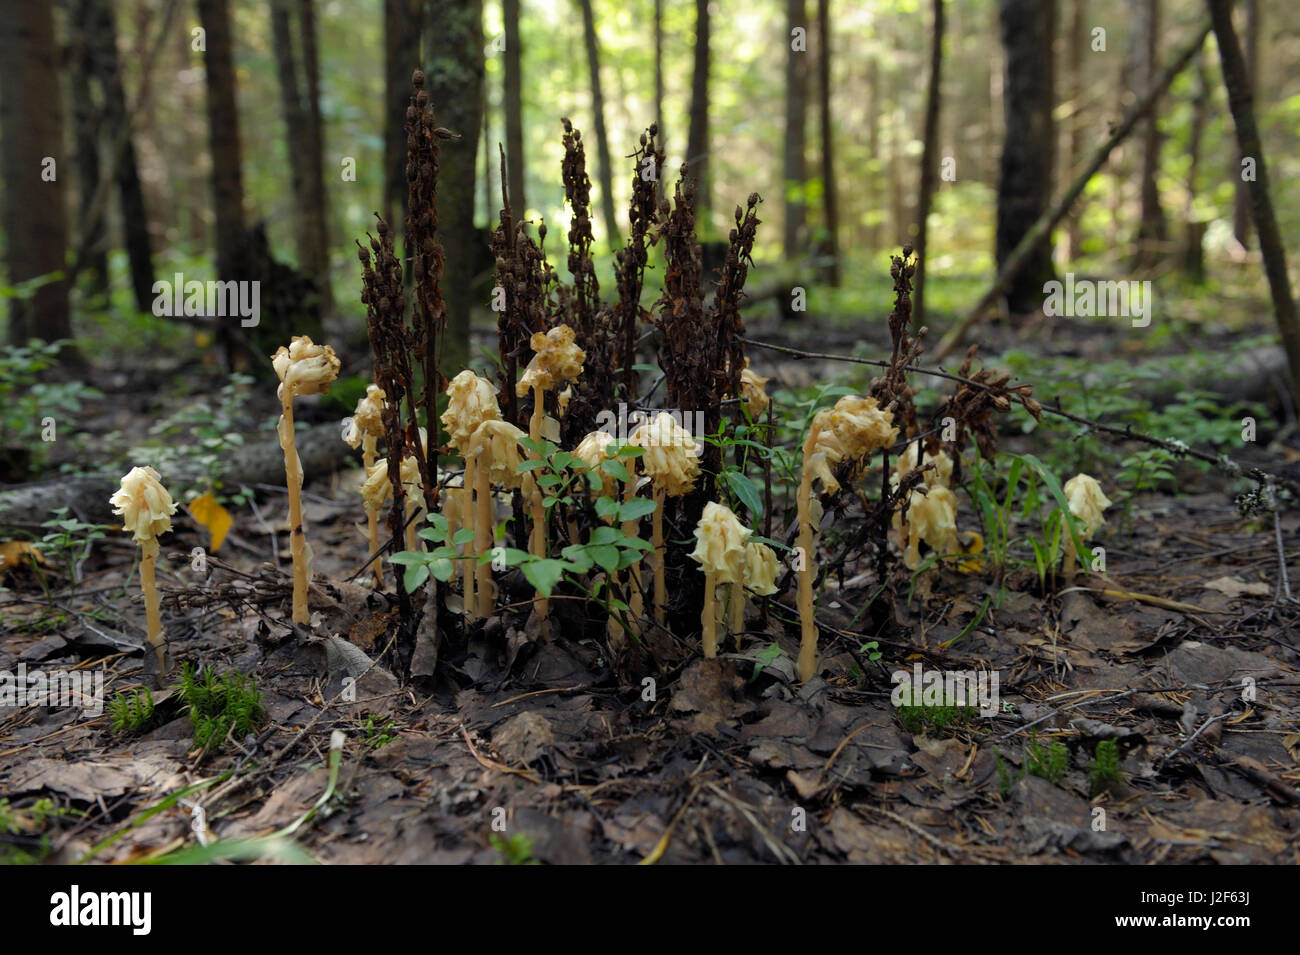 Dutchman's pipes in the forest near Manturovo, Russia Stock Photo